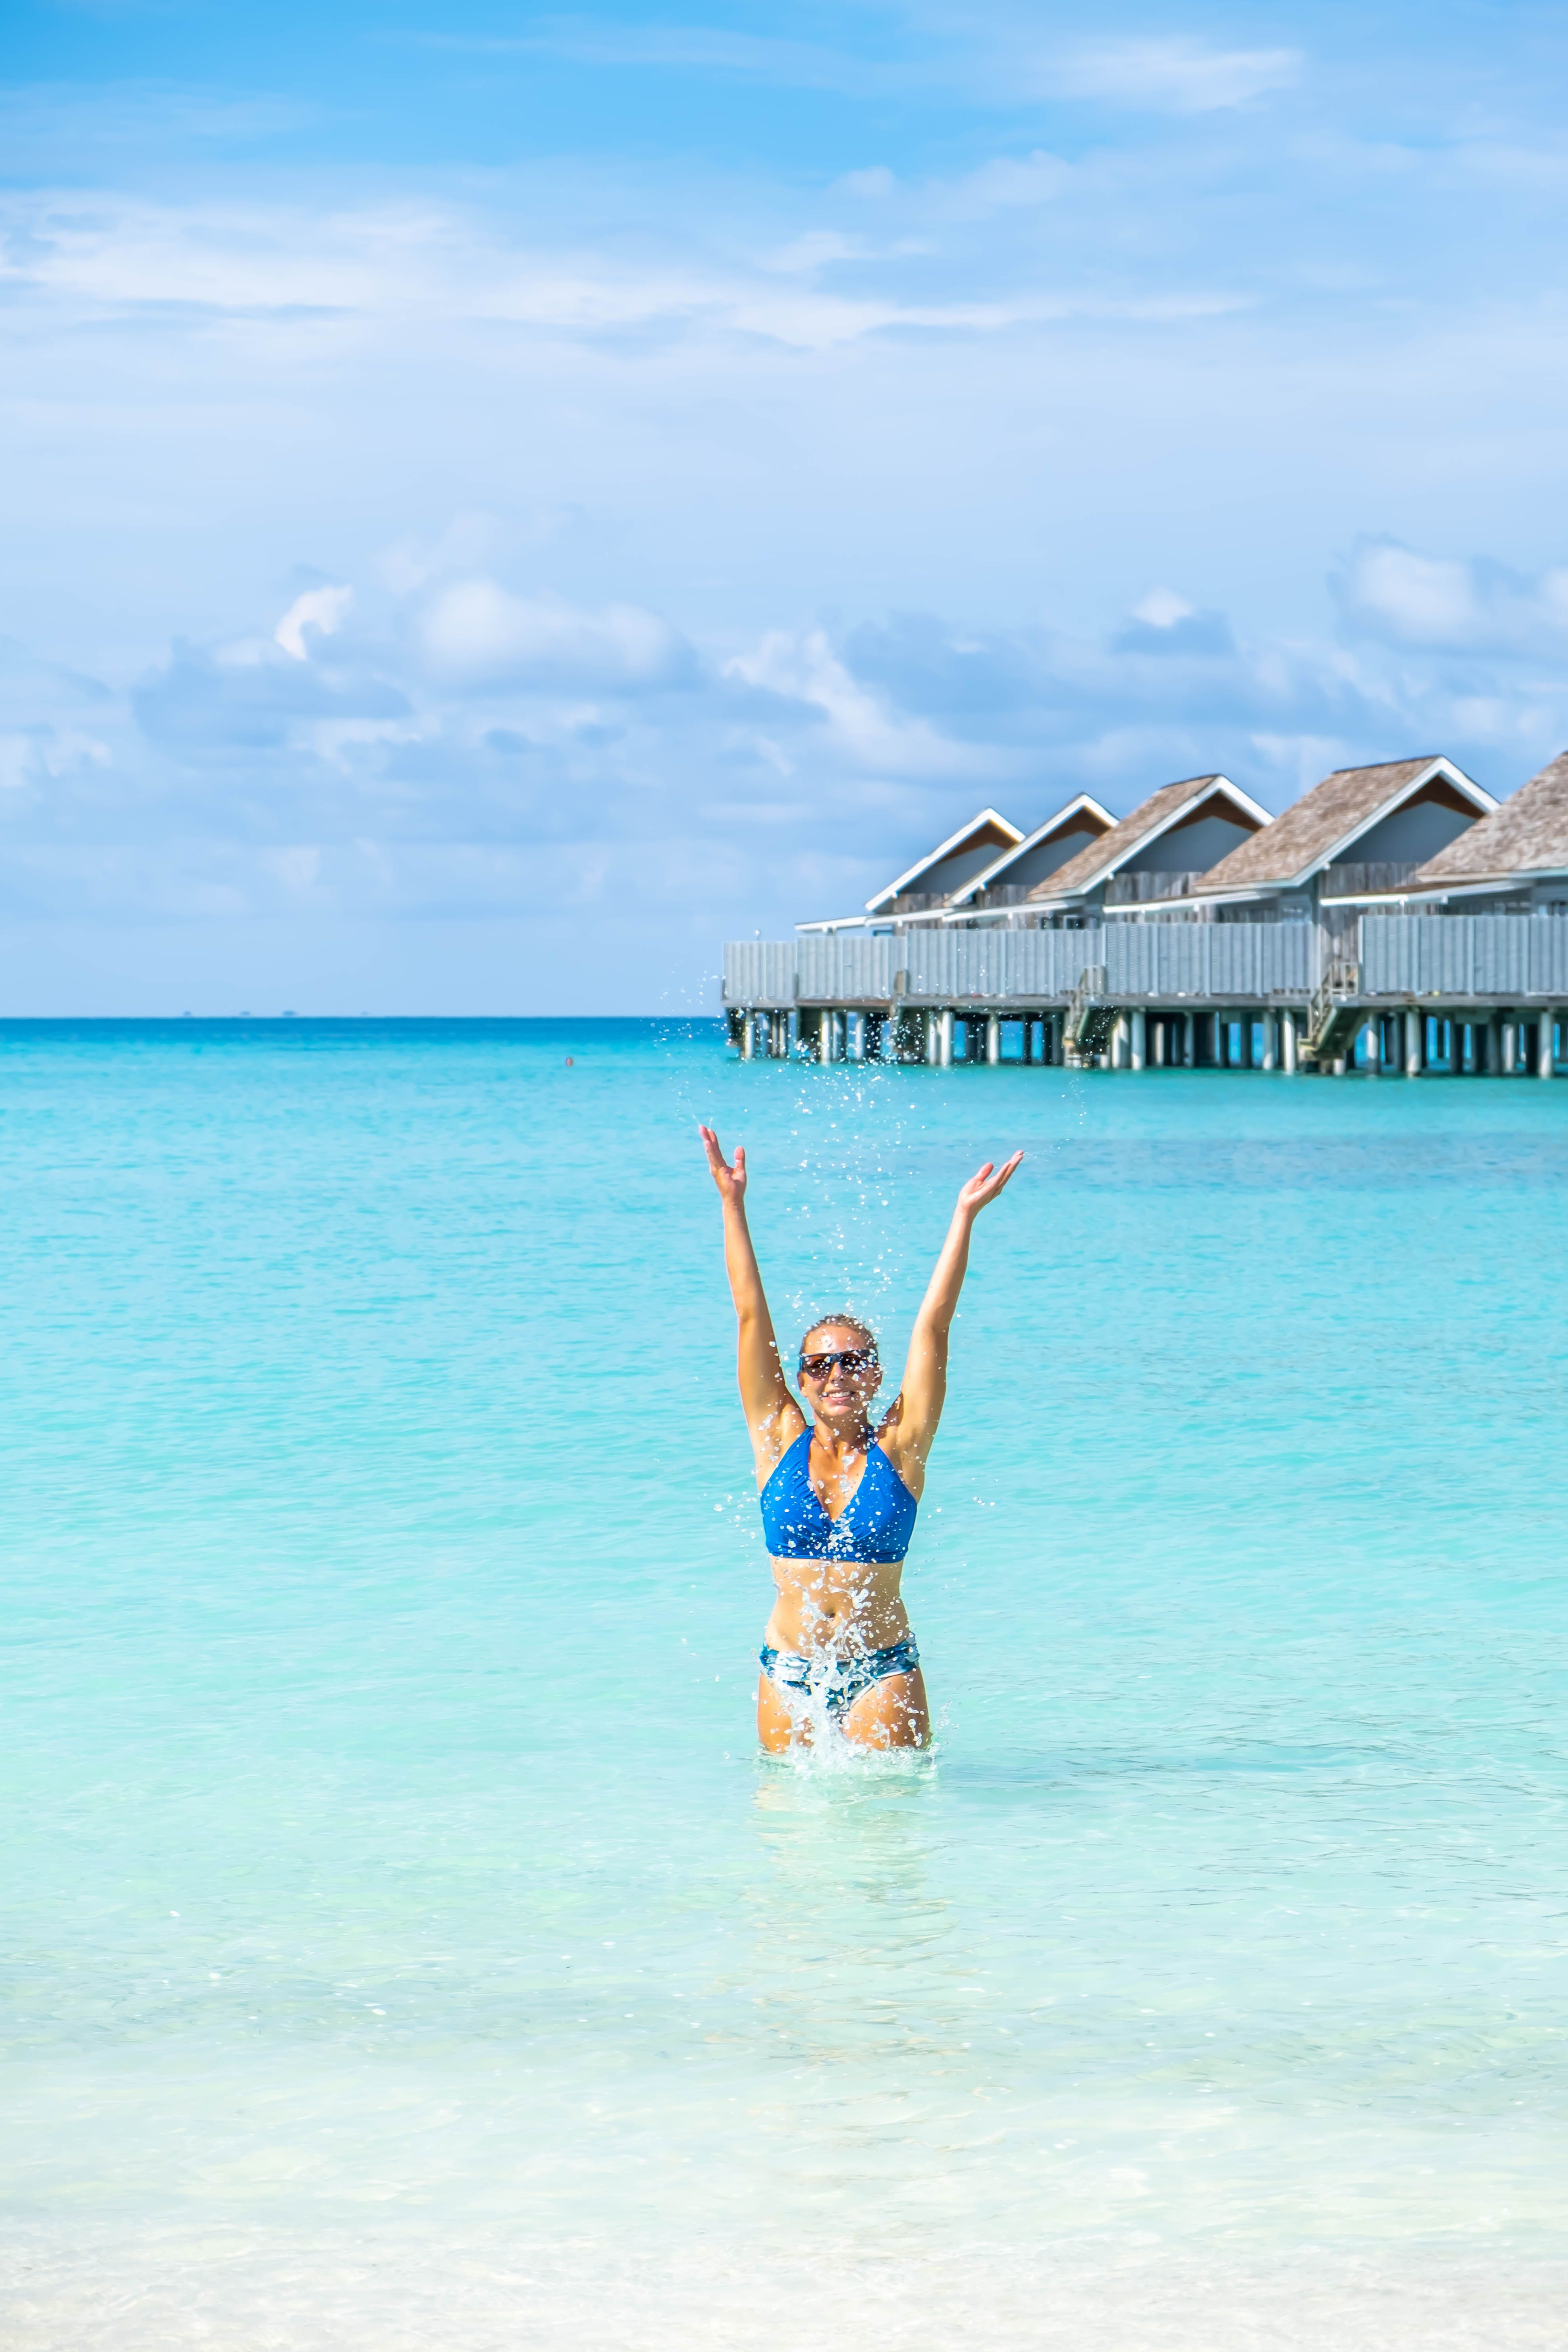 Kuramathi Review Enjoying The Best Dive Spots In The World Romantic Vacations Best All Inclusive Resorts Maldives Travel